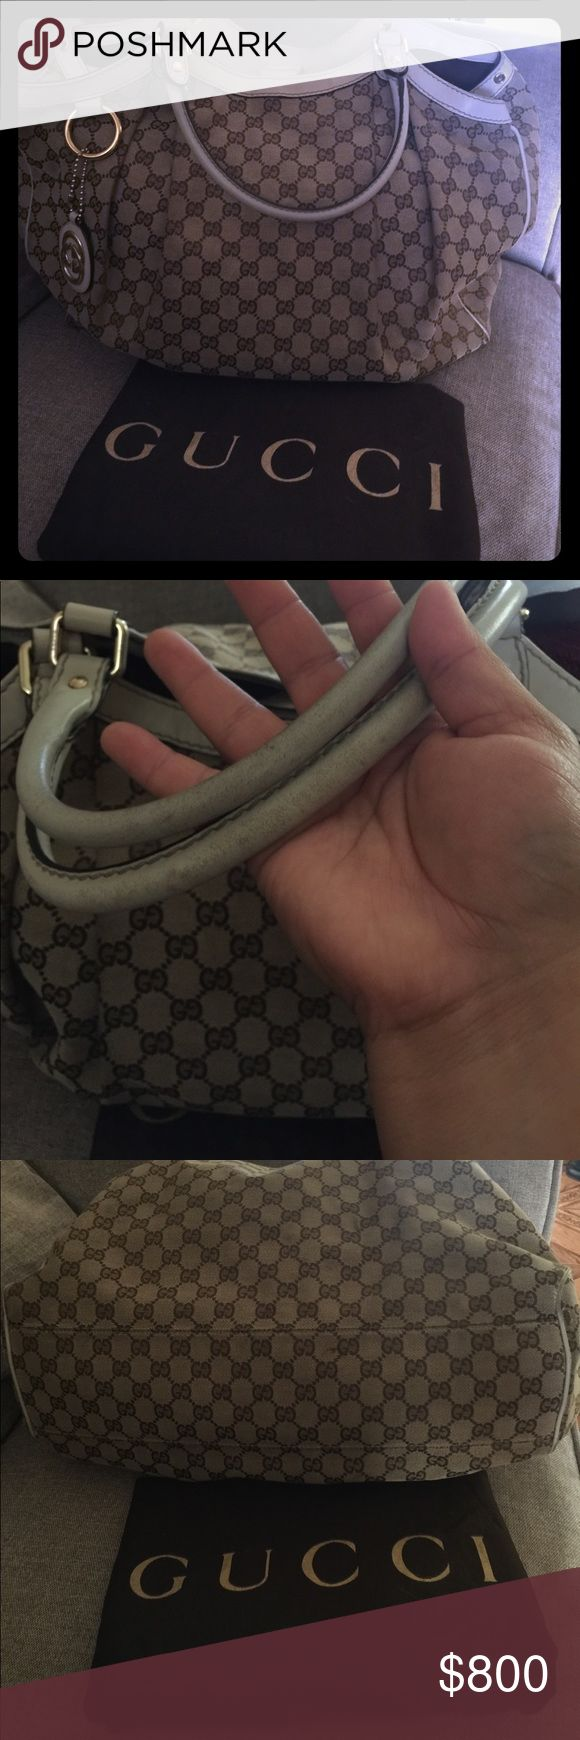 Gucci Sukey Bag Authentic Gucci Sukey shoulder bag its the large size handles are dirty (i will clean up before ship) please refer pictures so you can see the small flaws in the bottom corners comes with dust bag and price tag Gucci  Bags Shoulder Bags